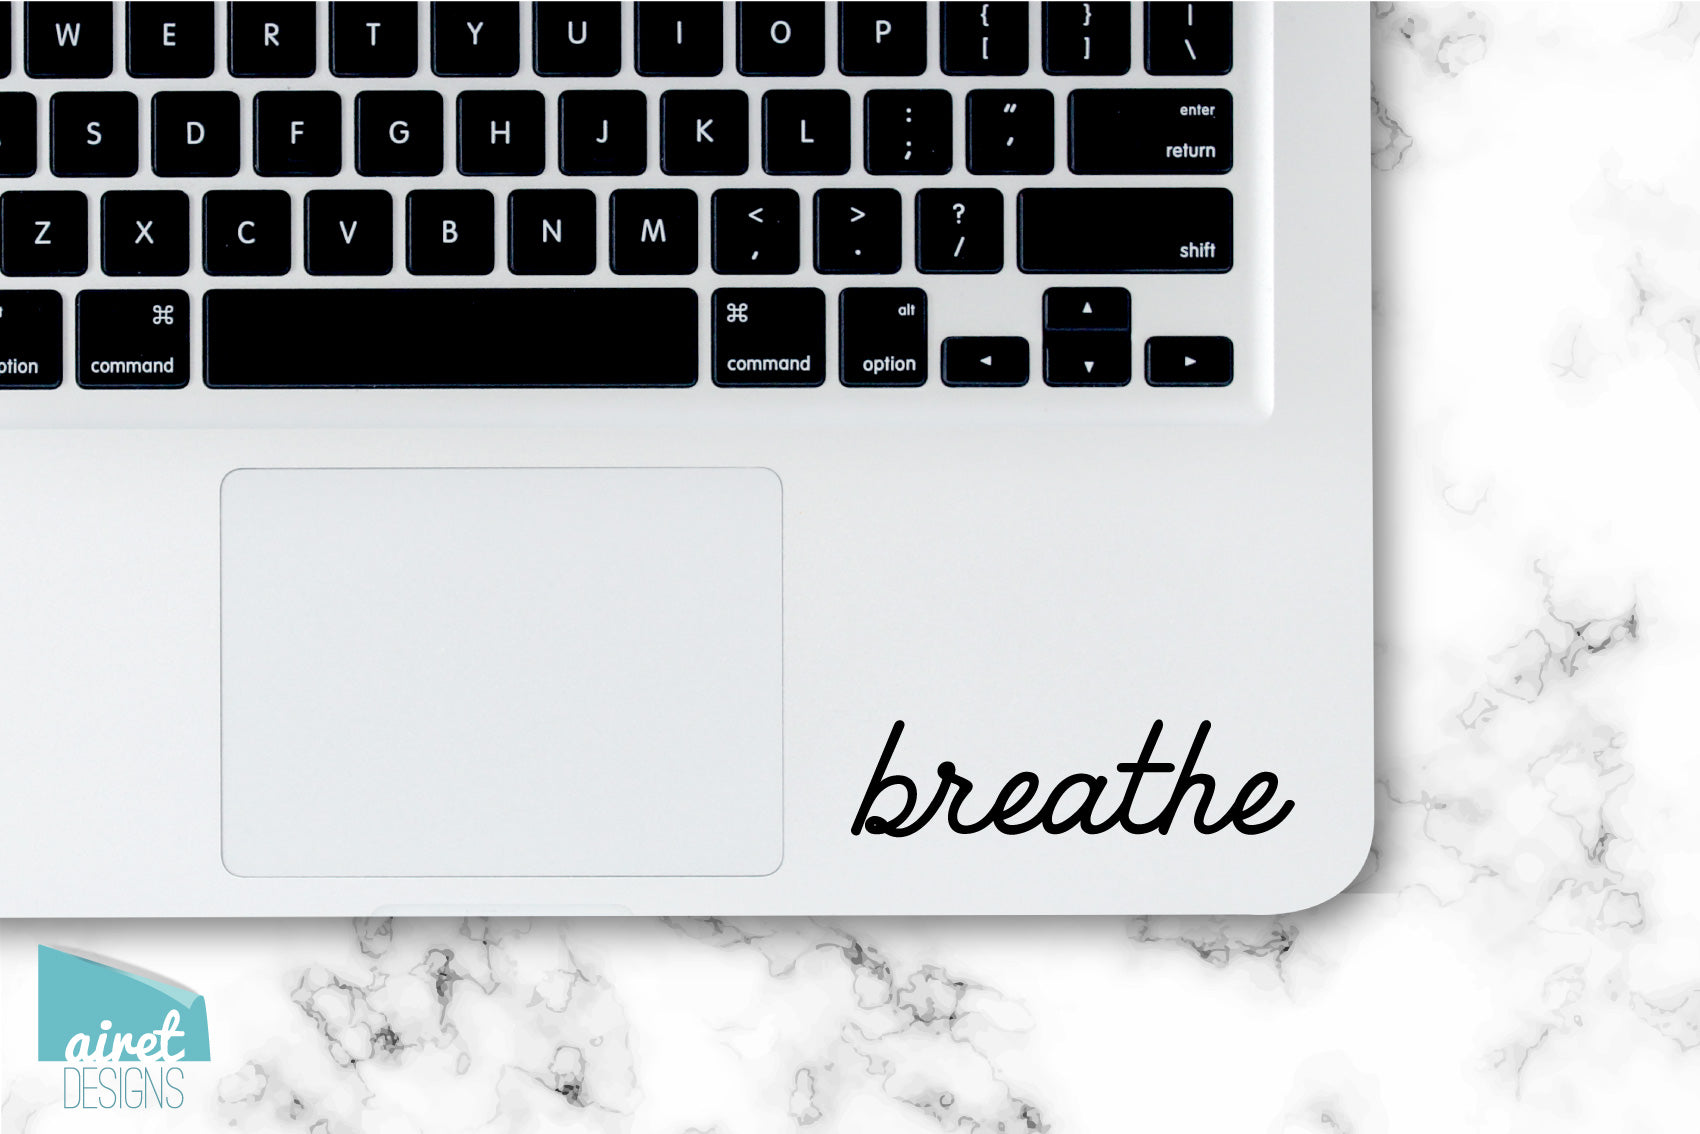 breathe - Vinyl Decal - Calming Peace Anxiety Quote Inspiring Success Goals Sticker for Laptop Car Window Tablet Cell Phone Case Tumbler Cup